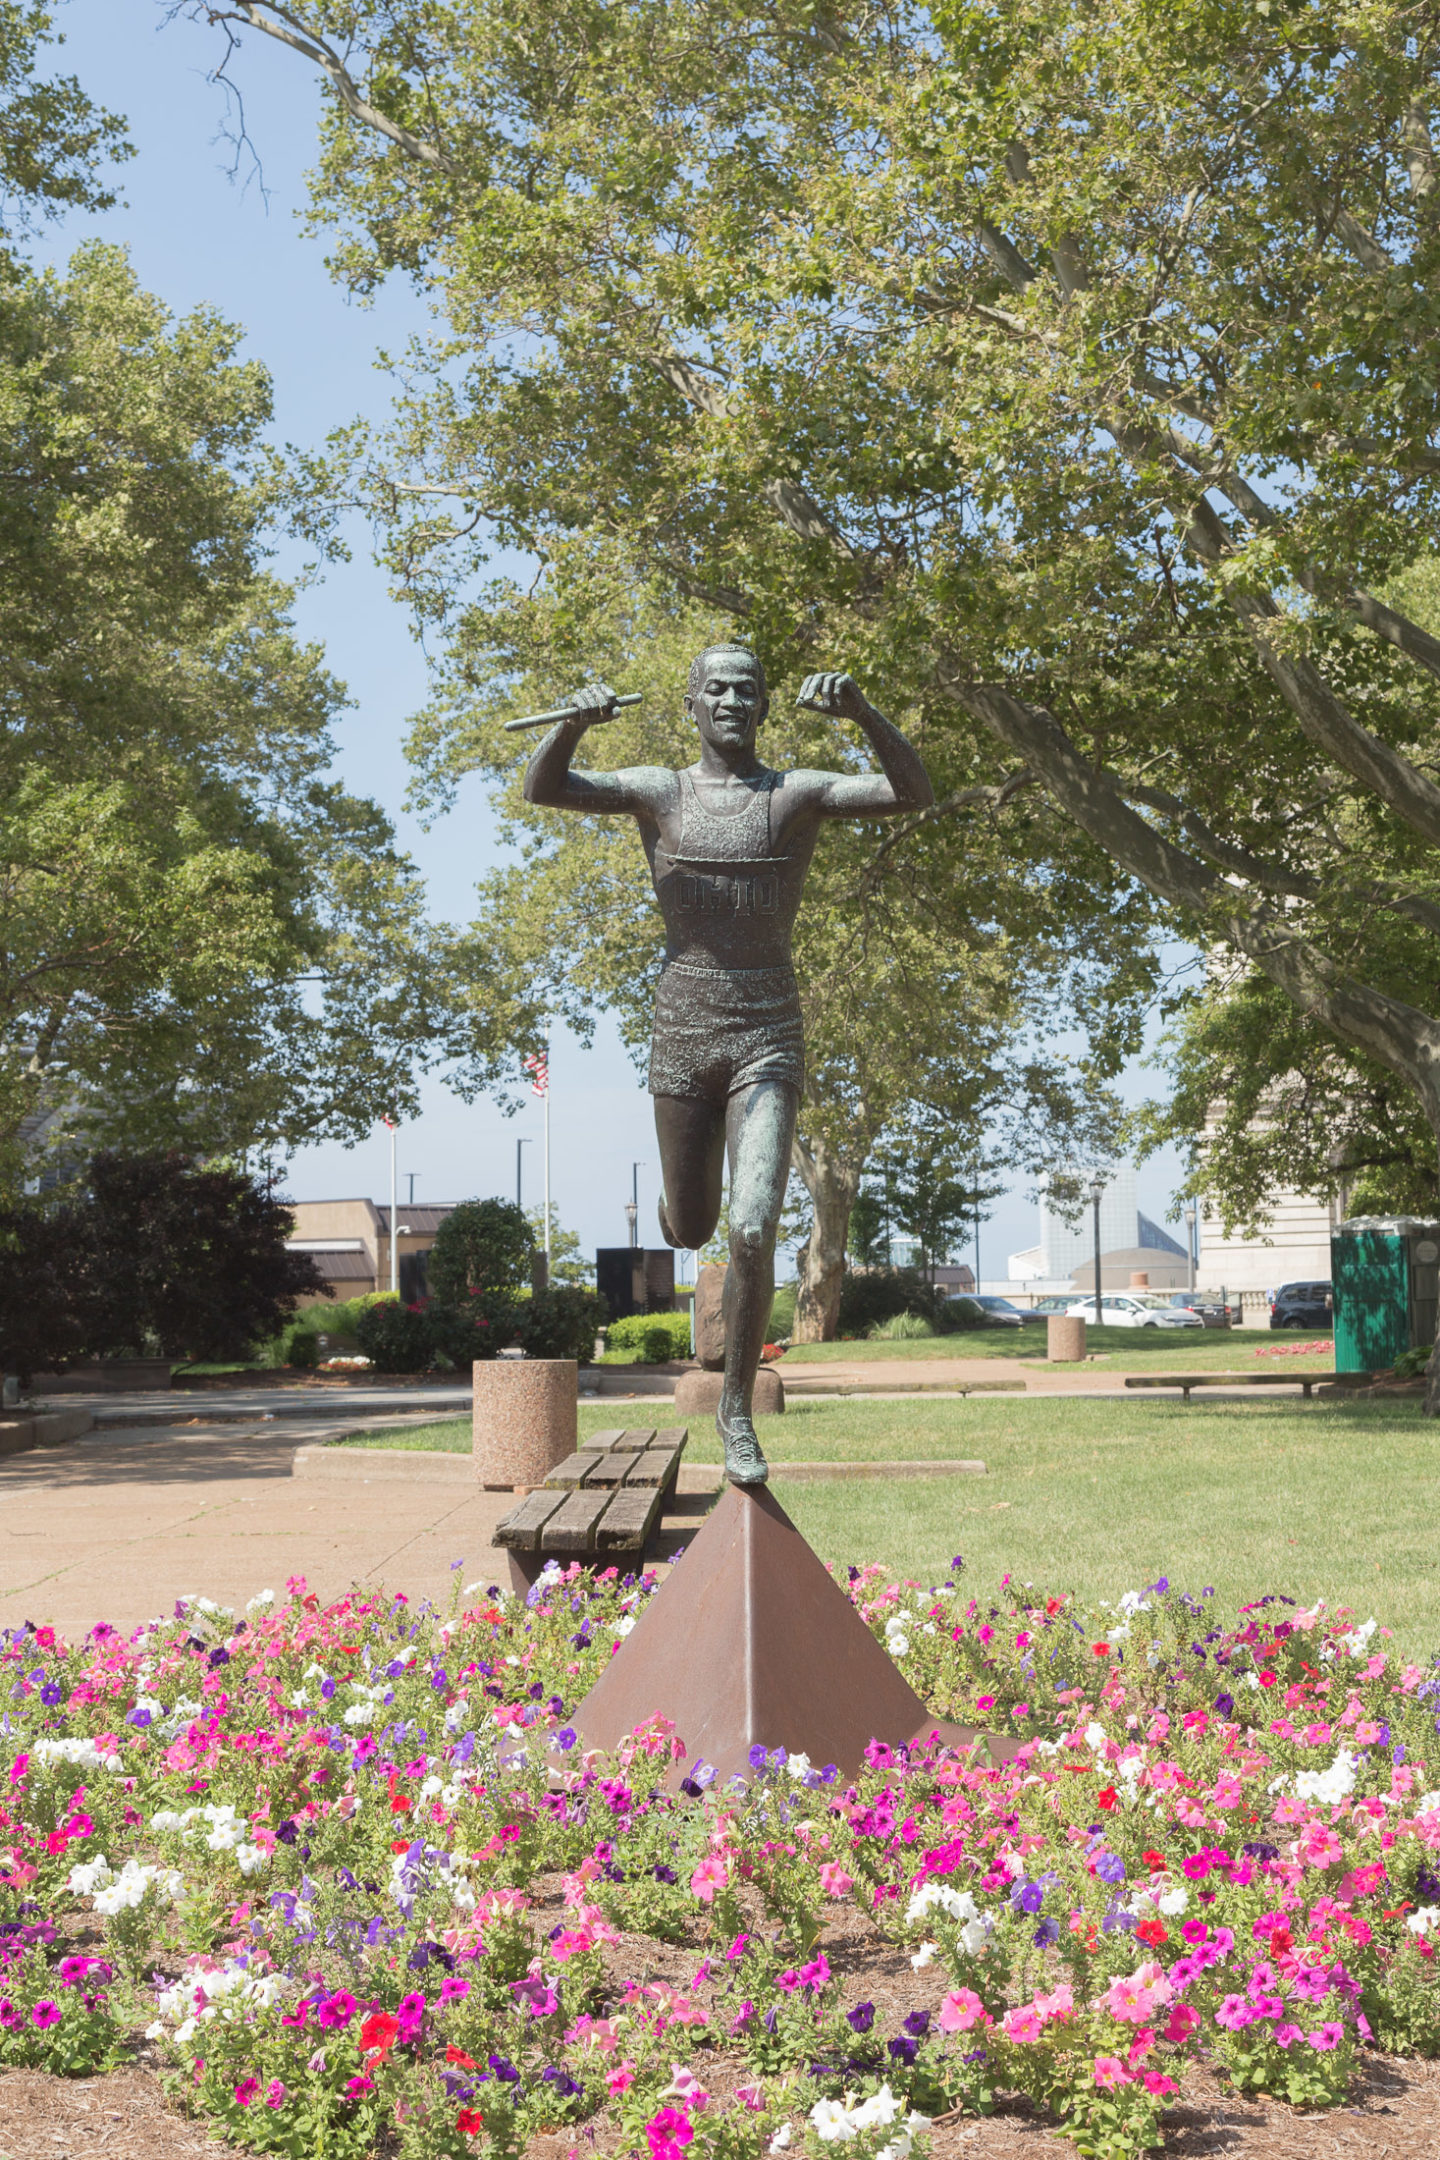 Jesse Owens Statue surrounded by flowers in Cleveland, Ohio